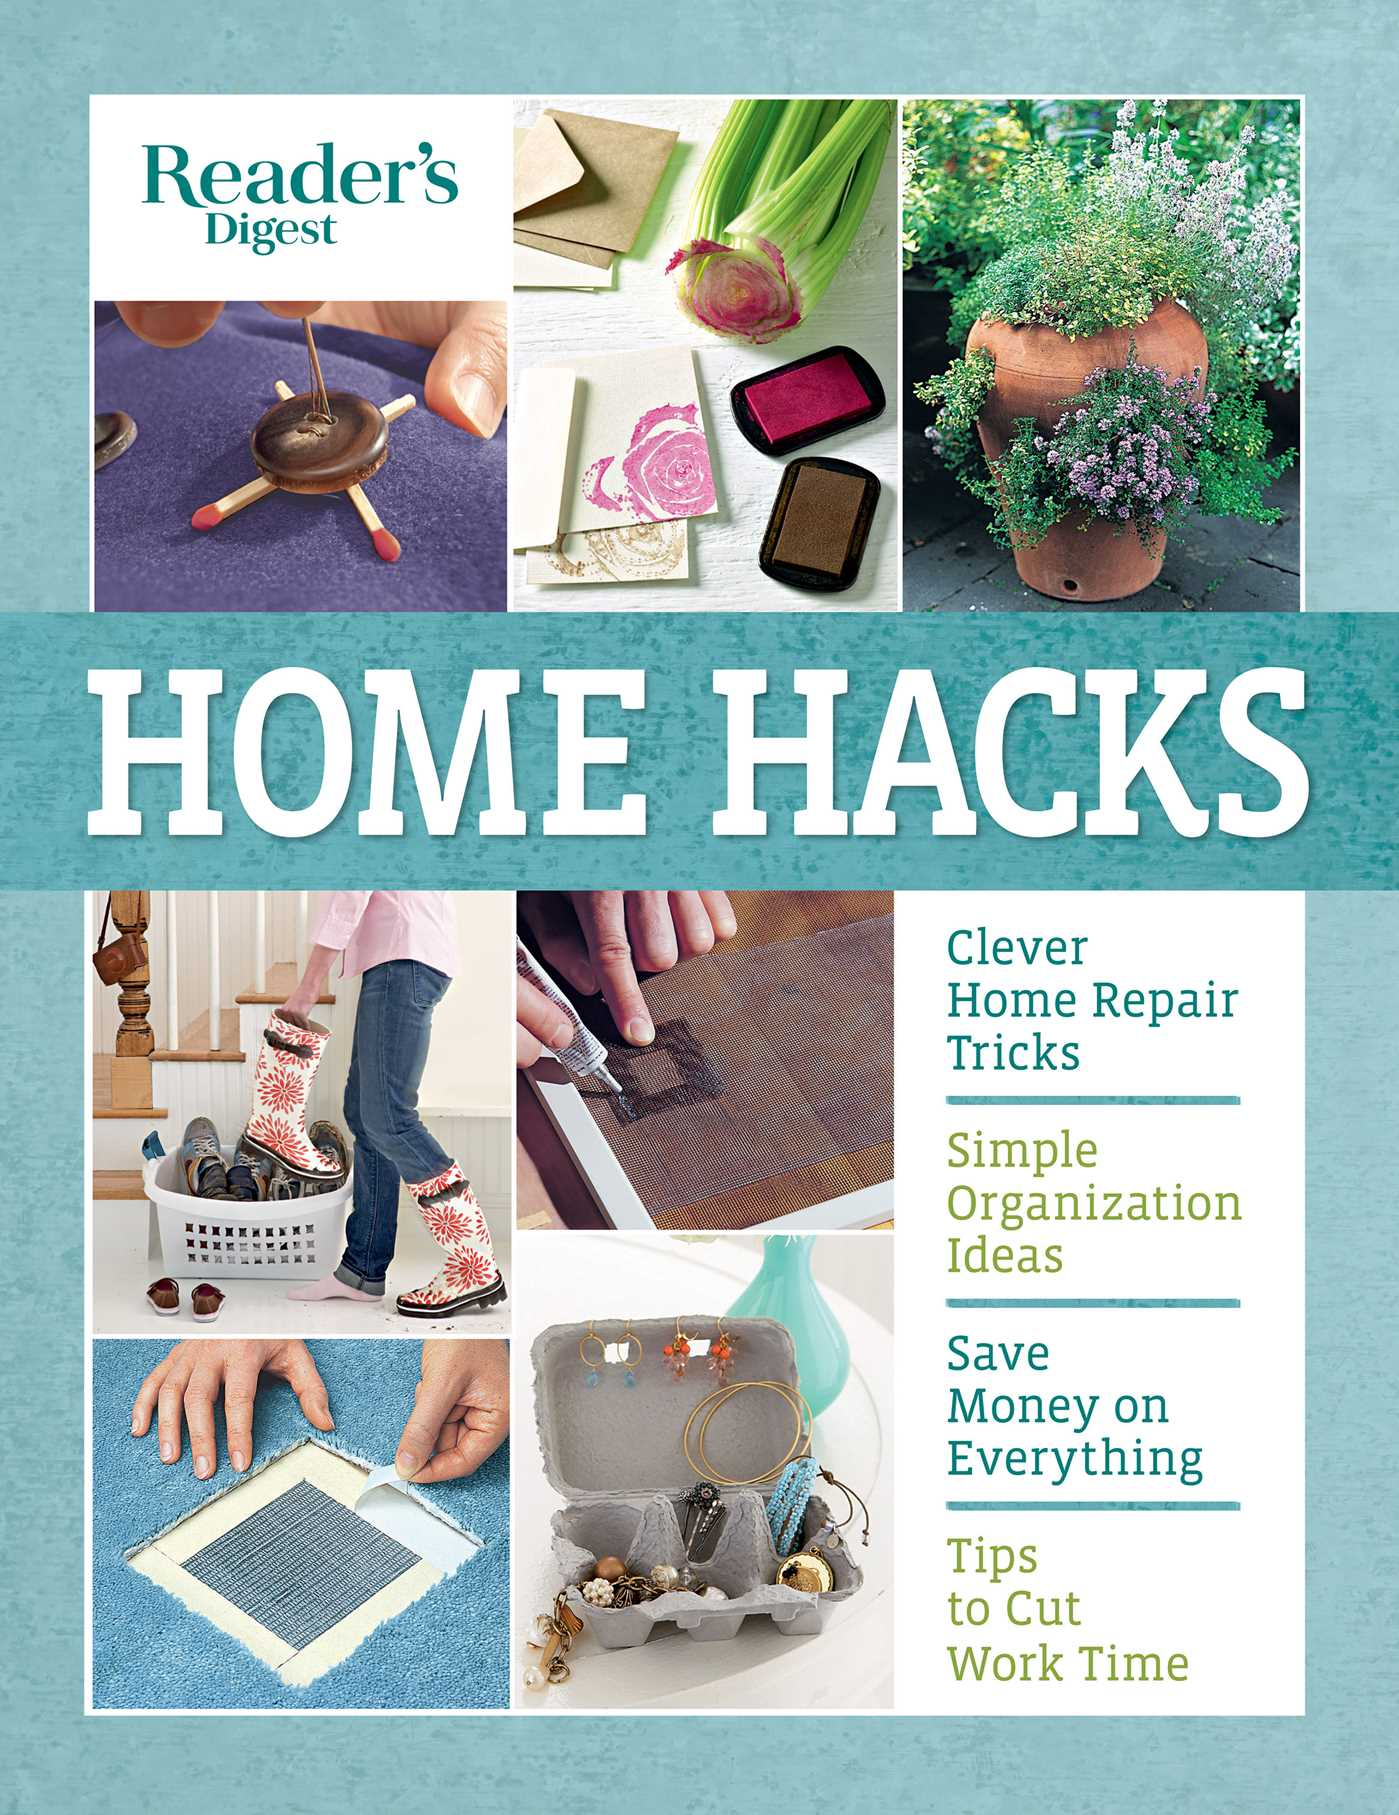 Reader's Digest Home Hacks Clever DIY Tips and Tricks for Fixing, Organizing, Decorating, and Managing Your Household